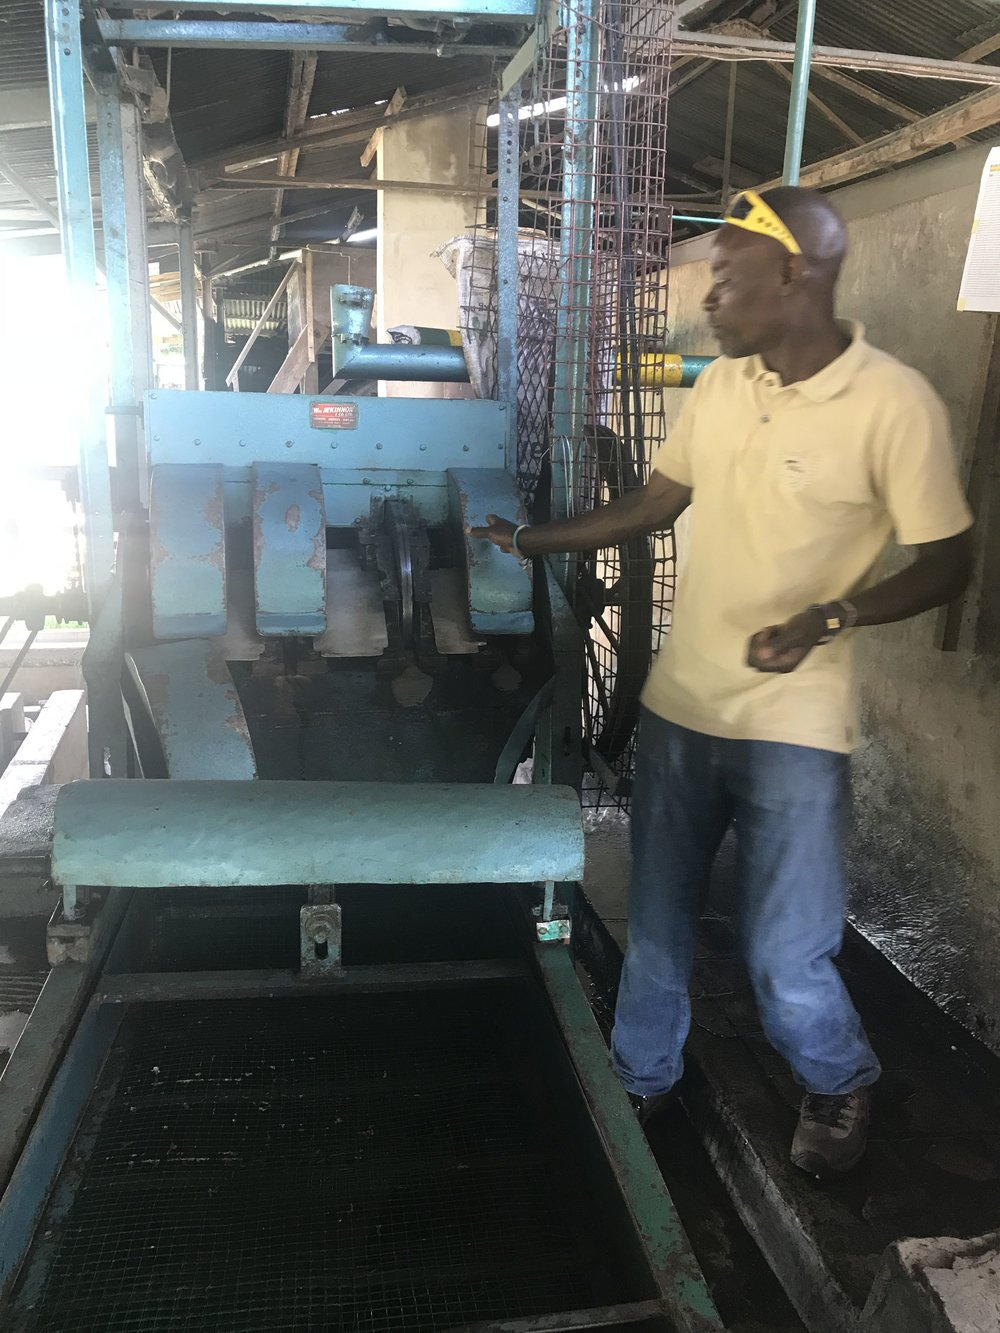 Thaddeus standing next to the machine that separates the beans from the shells and explaining how it works.